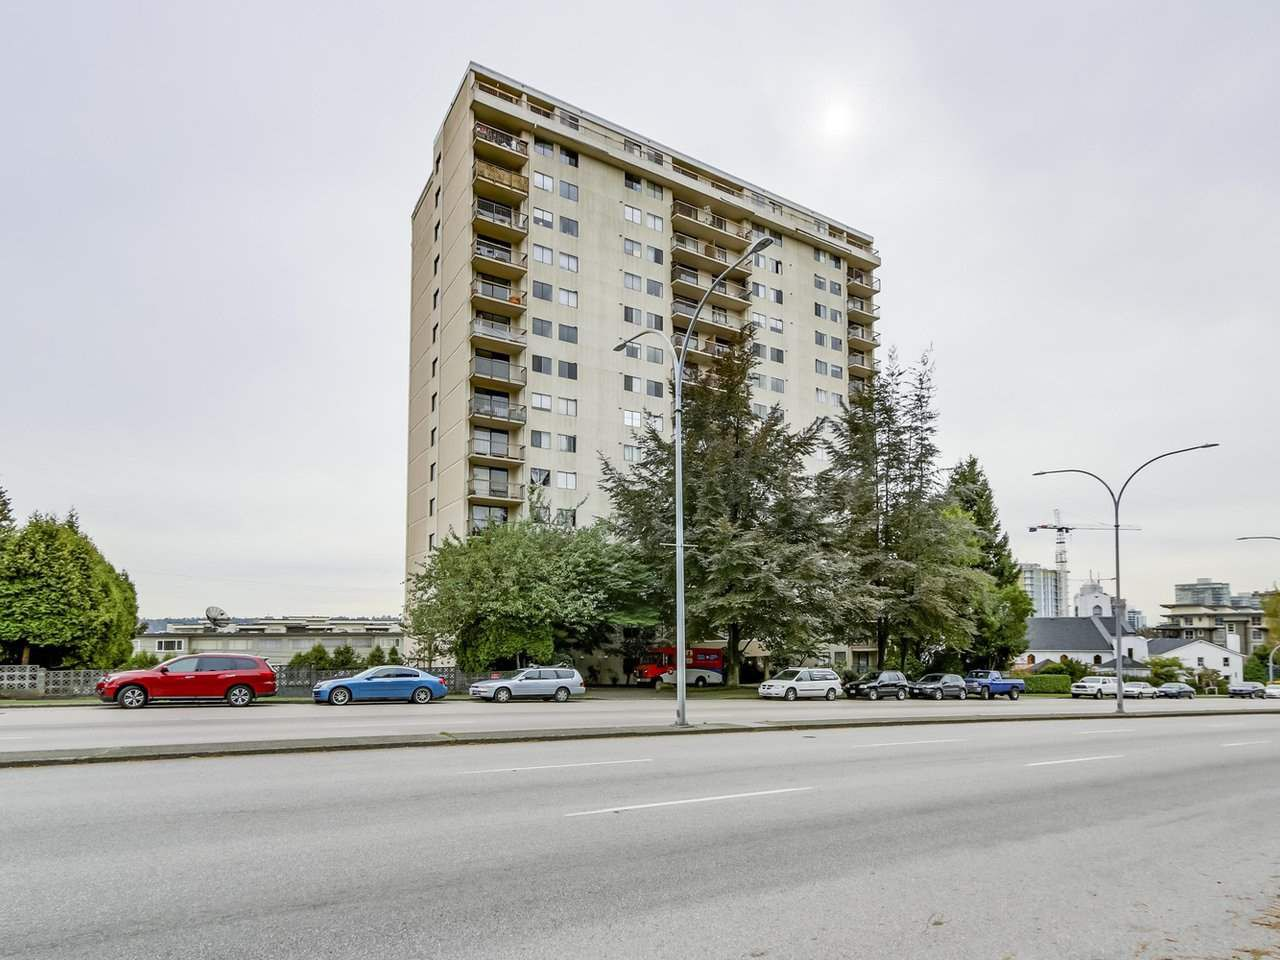 """Main Photo: 101 320 ROYAL Avenue in New Westminster: Downtown NW Condo for sale in """"THE PEPPERTREE"""" : MLS®# R2313427"""